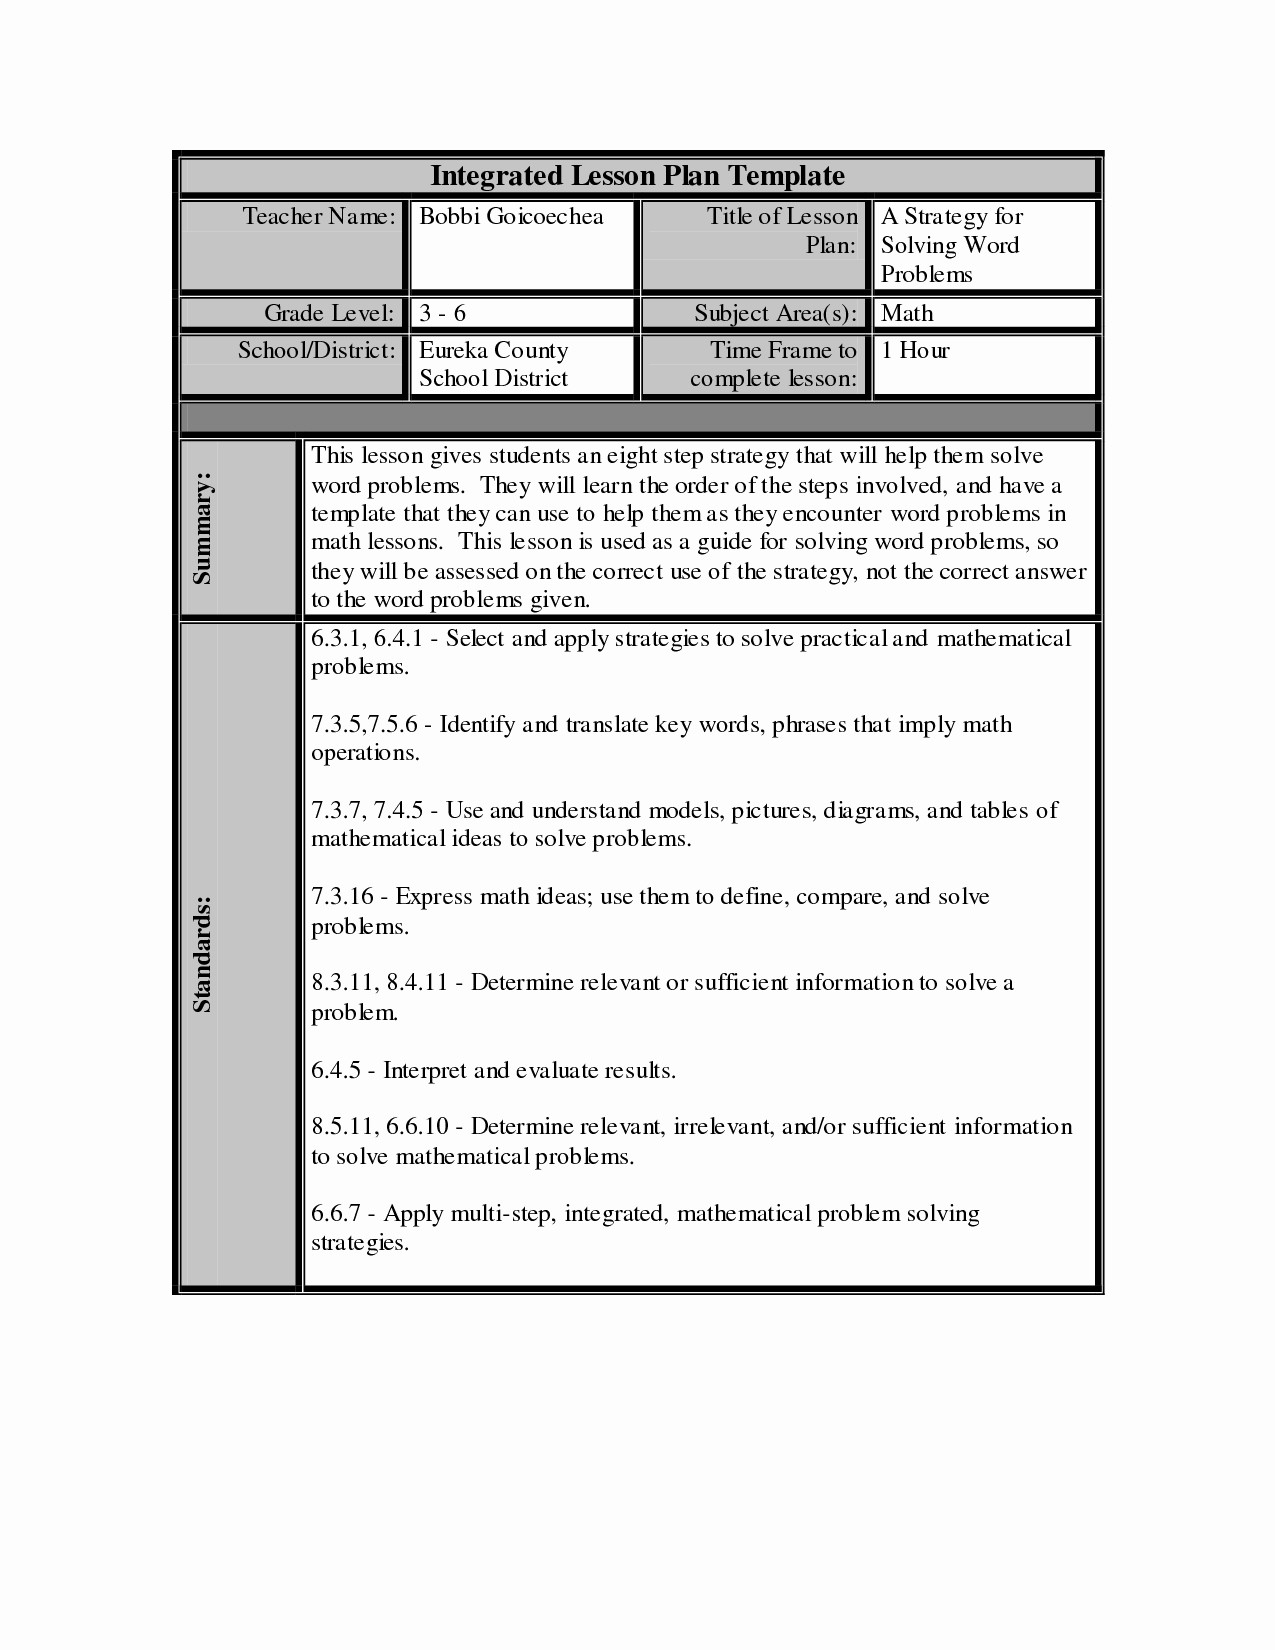 Lesson Plan Template Word Editable New Lesson Plan Template Word